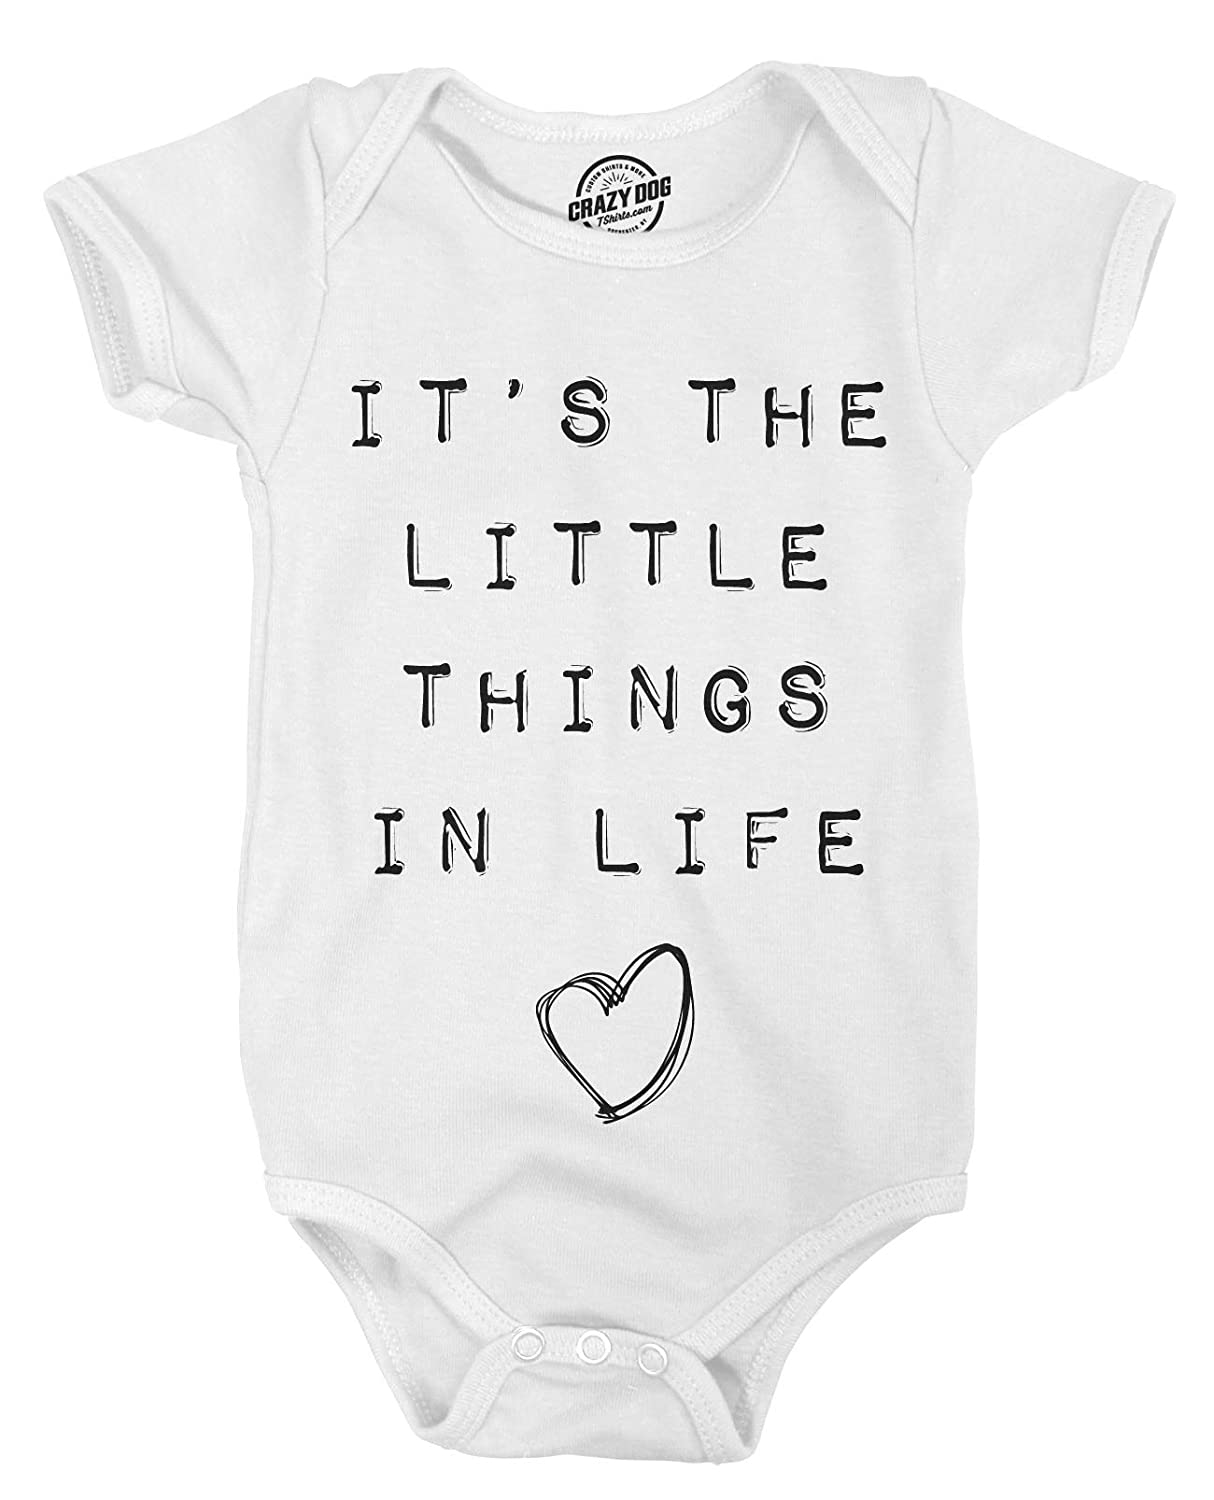 Romper Its The Little Things Funny Baby Clothes Undershirts with Sayings